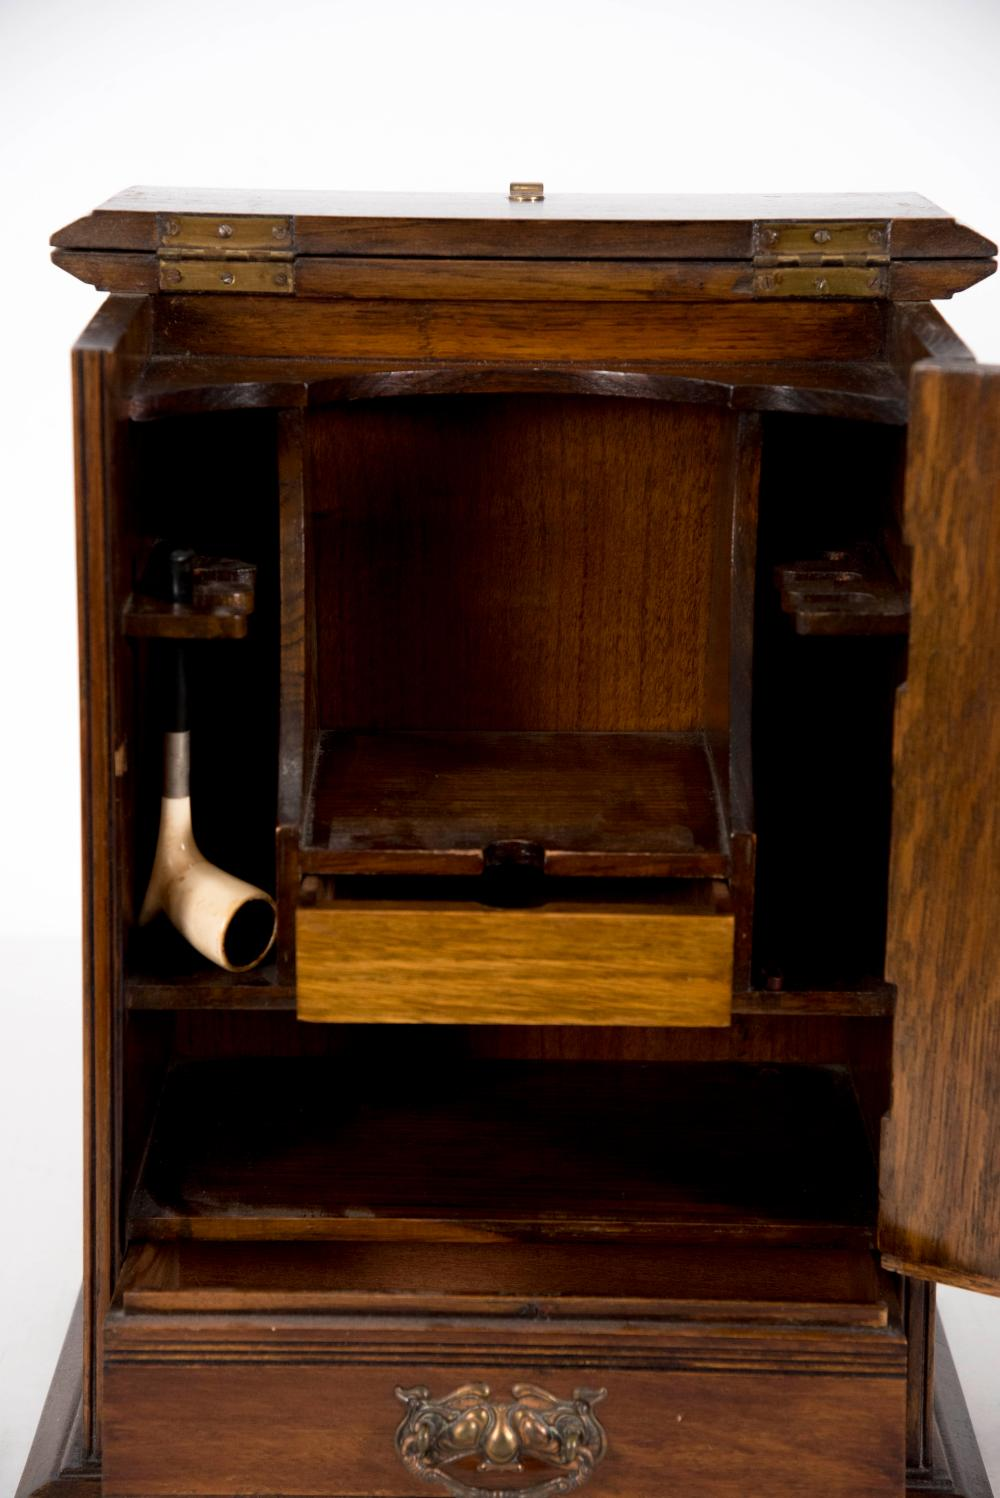 Antique English Pipe and Tobacco Cabinet 15 1/2 x 11 x 7 1/2 inches